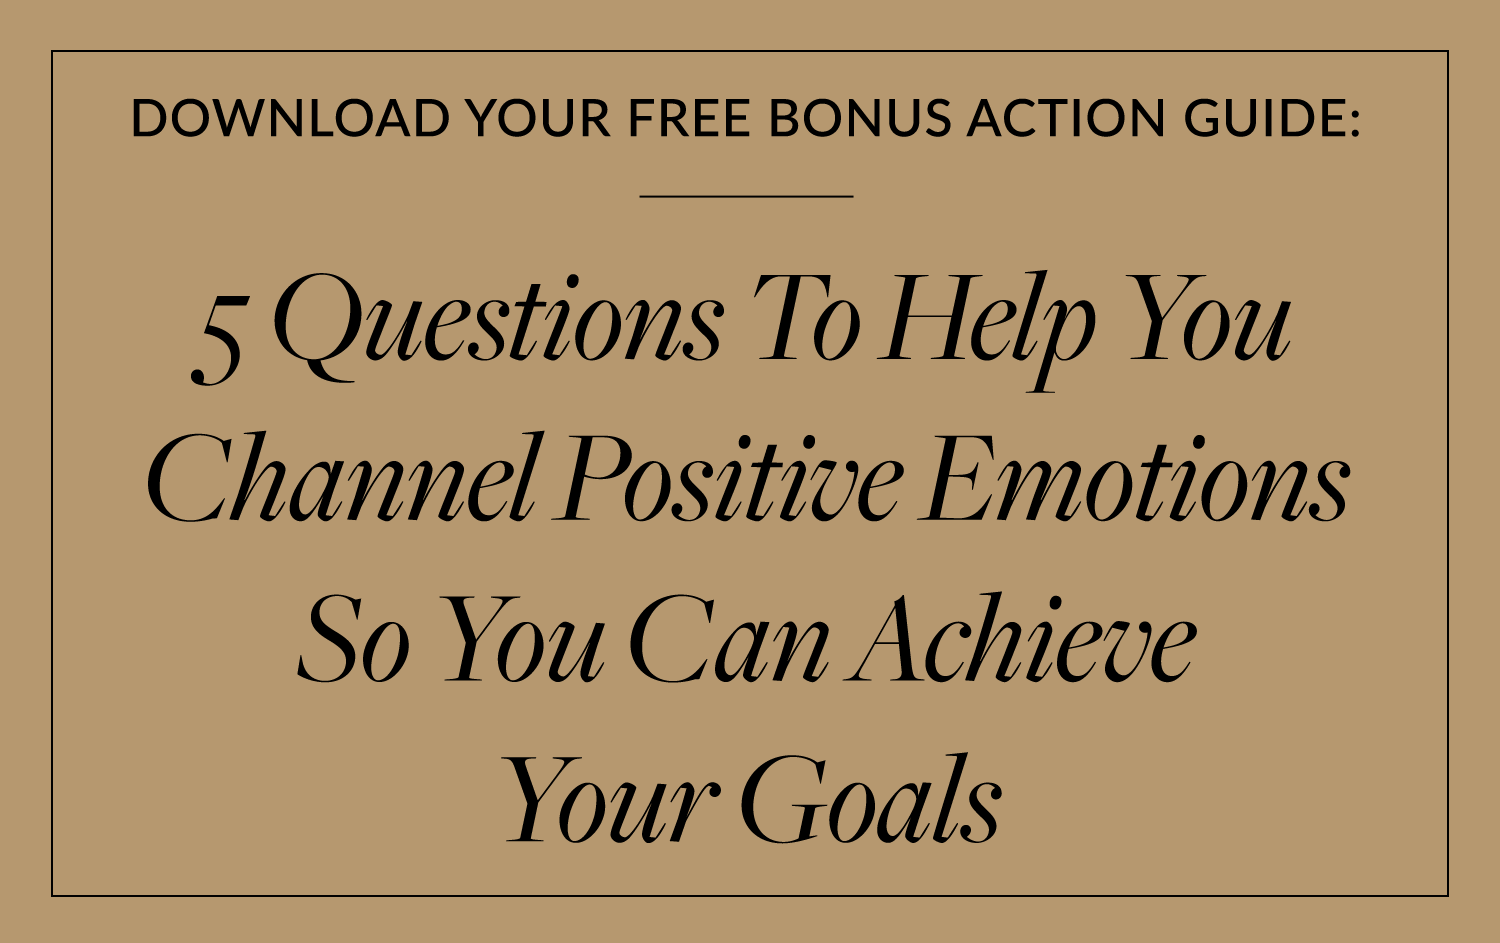 5 Questions To Help You Channel Positive Emotions So You Can Achieve Your Goals